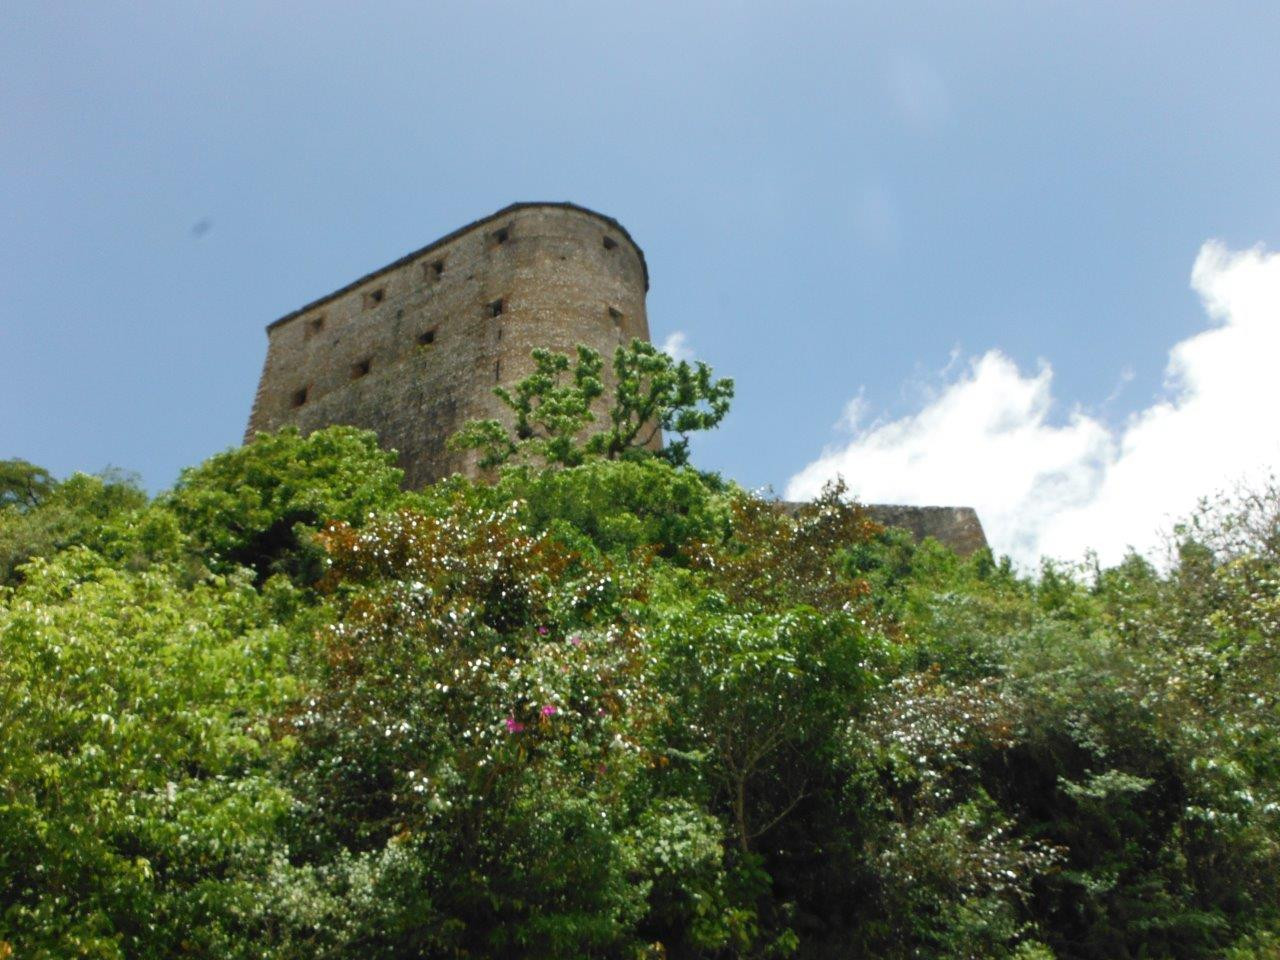 The Citadel – a huge fort reached by an ancient stone-paved road on horseback